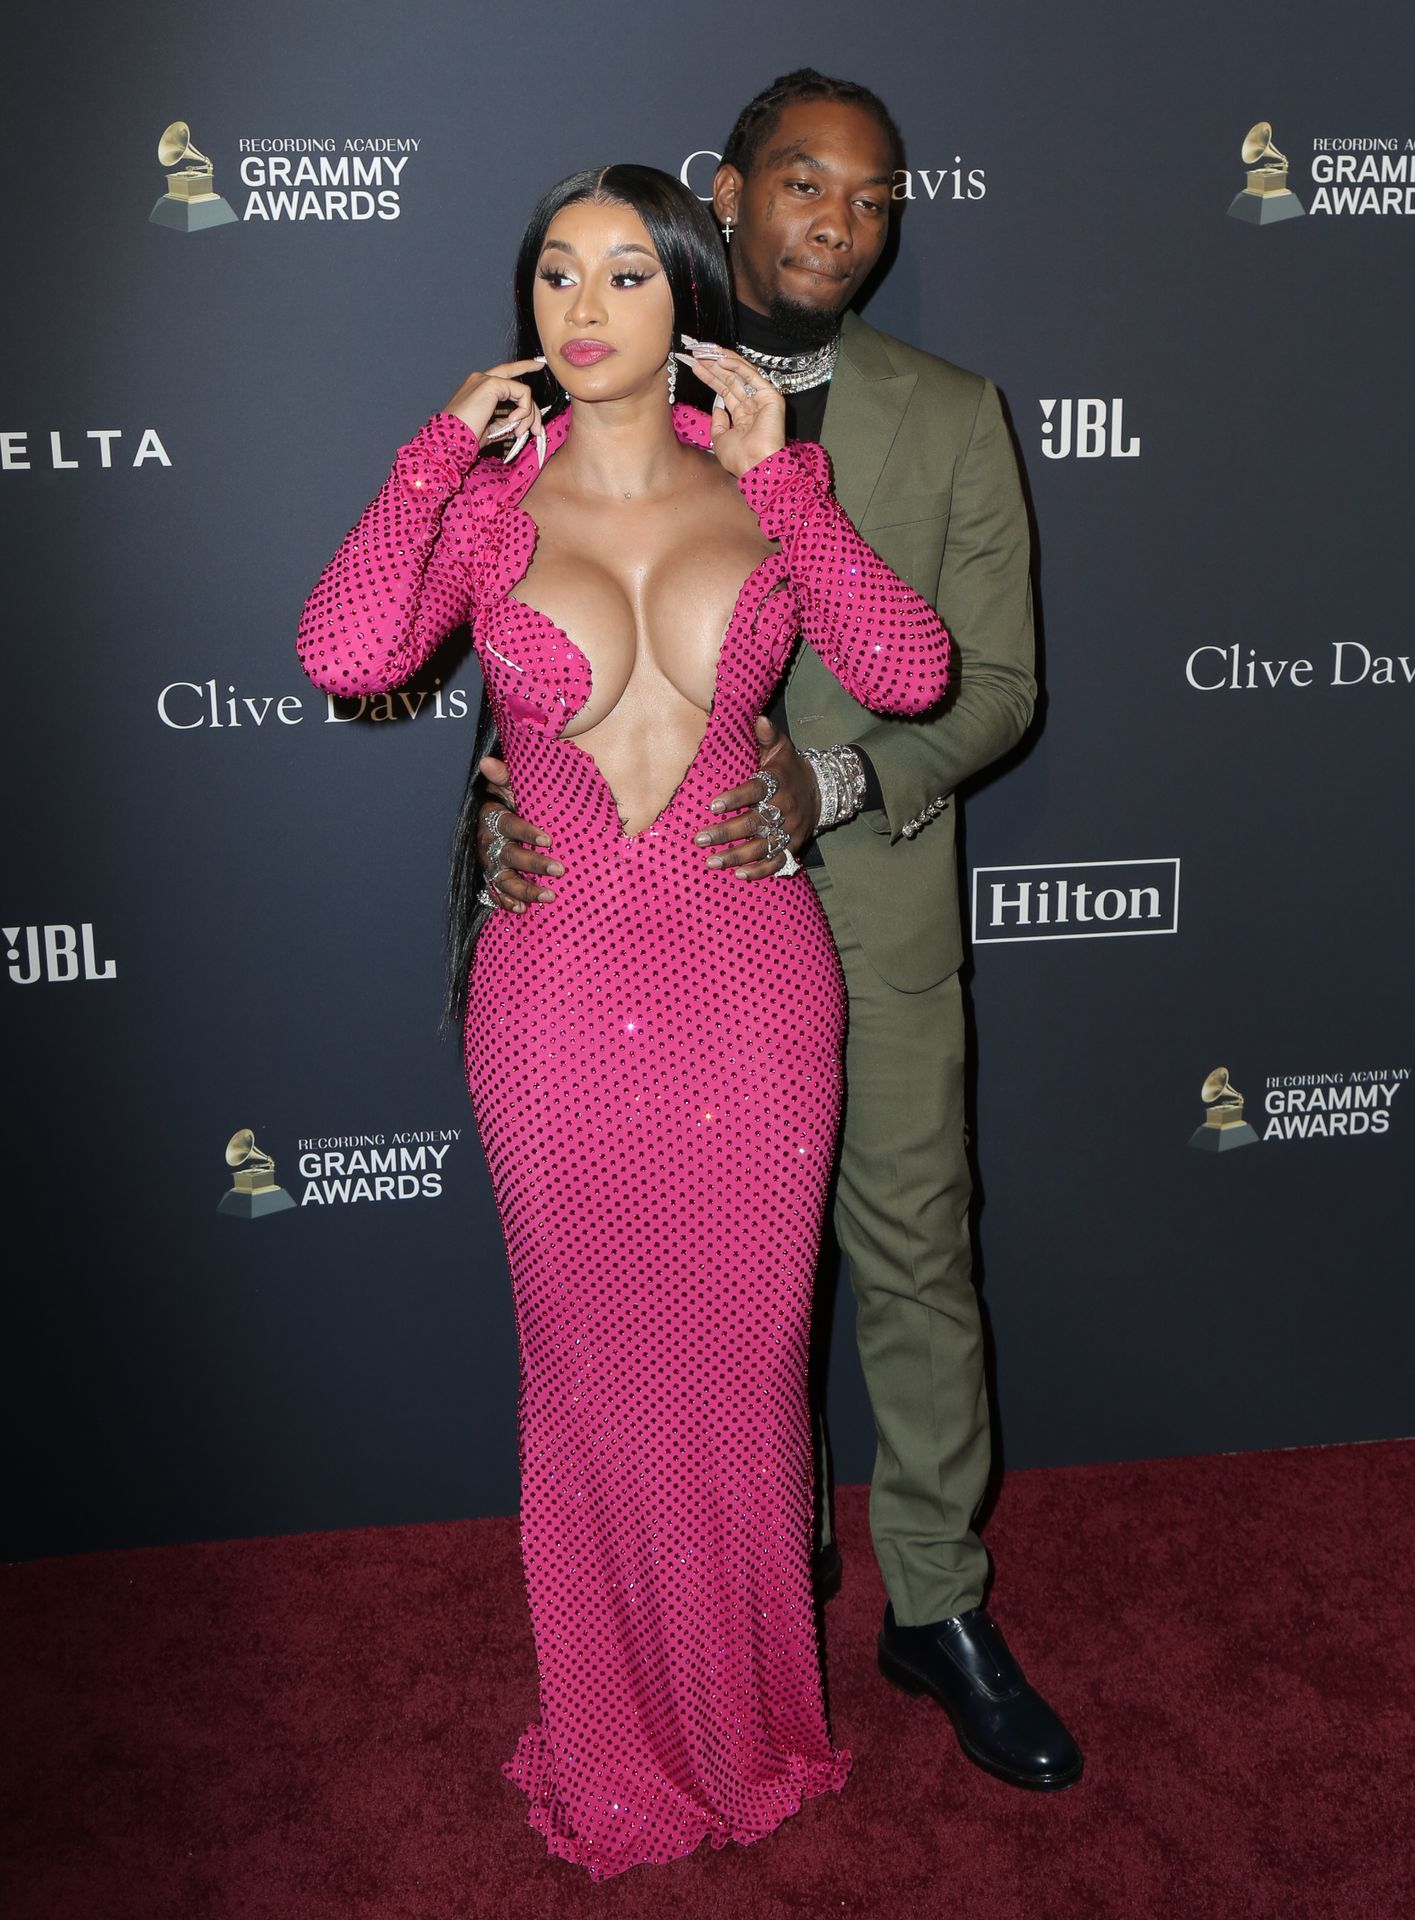 Offset Covers Cardi B's Boobs To Avoid Wardrobe Malfunction At Clive Davis Pre Grammy Party 0081